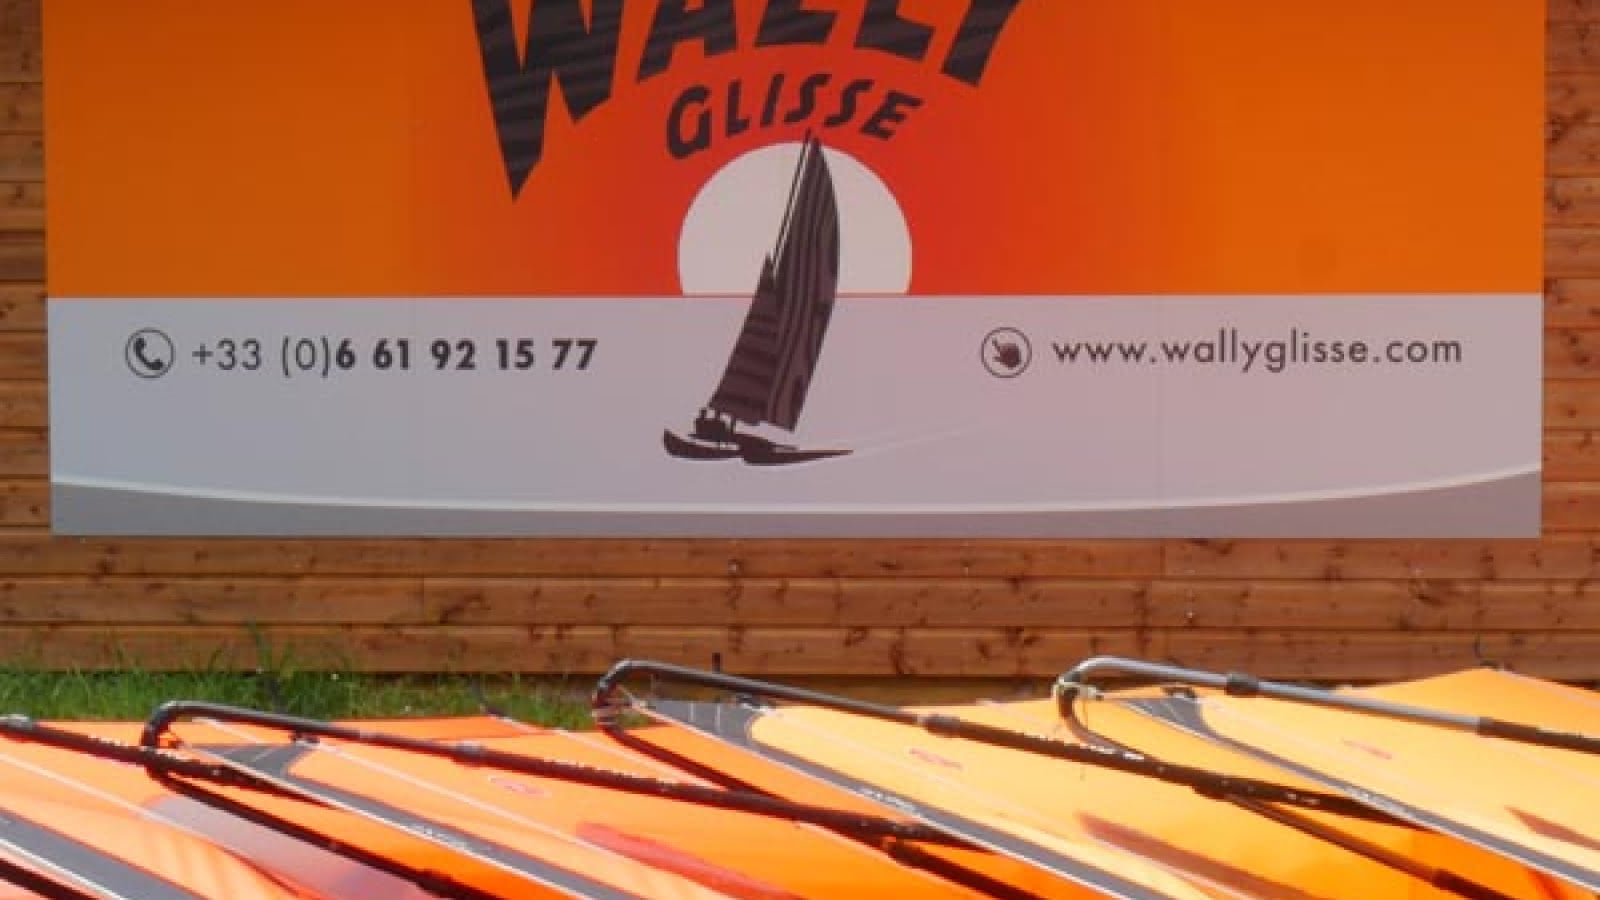 Wally Glisse - Ecole de voile 3